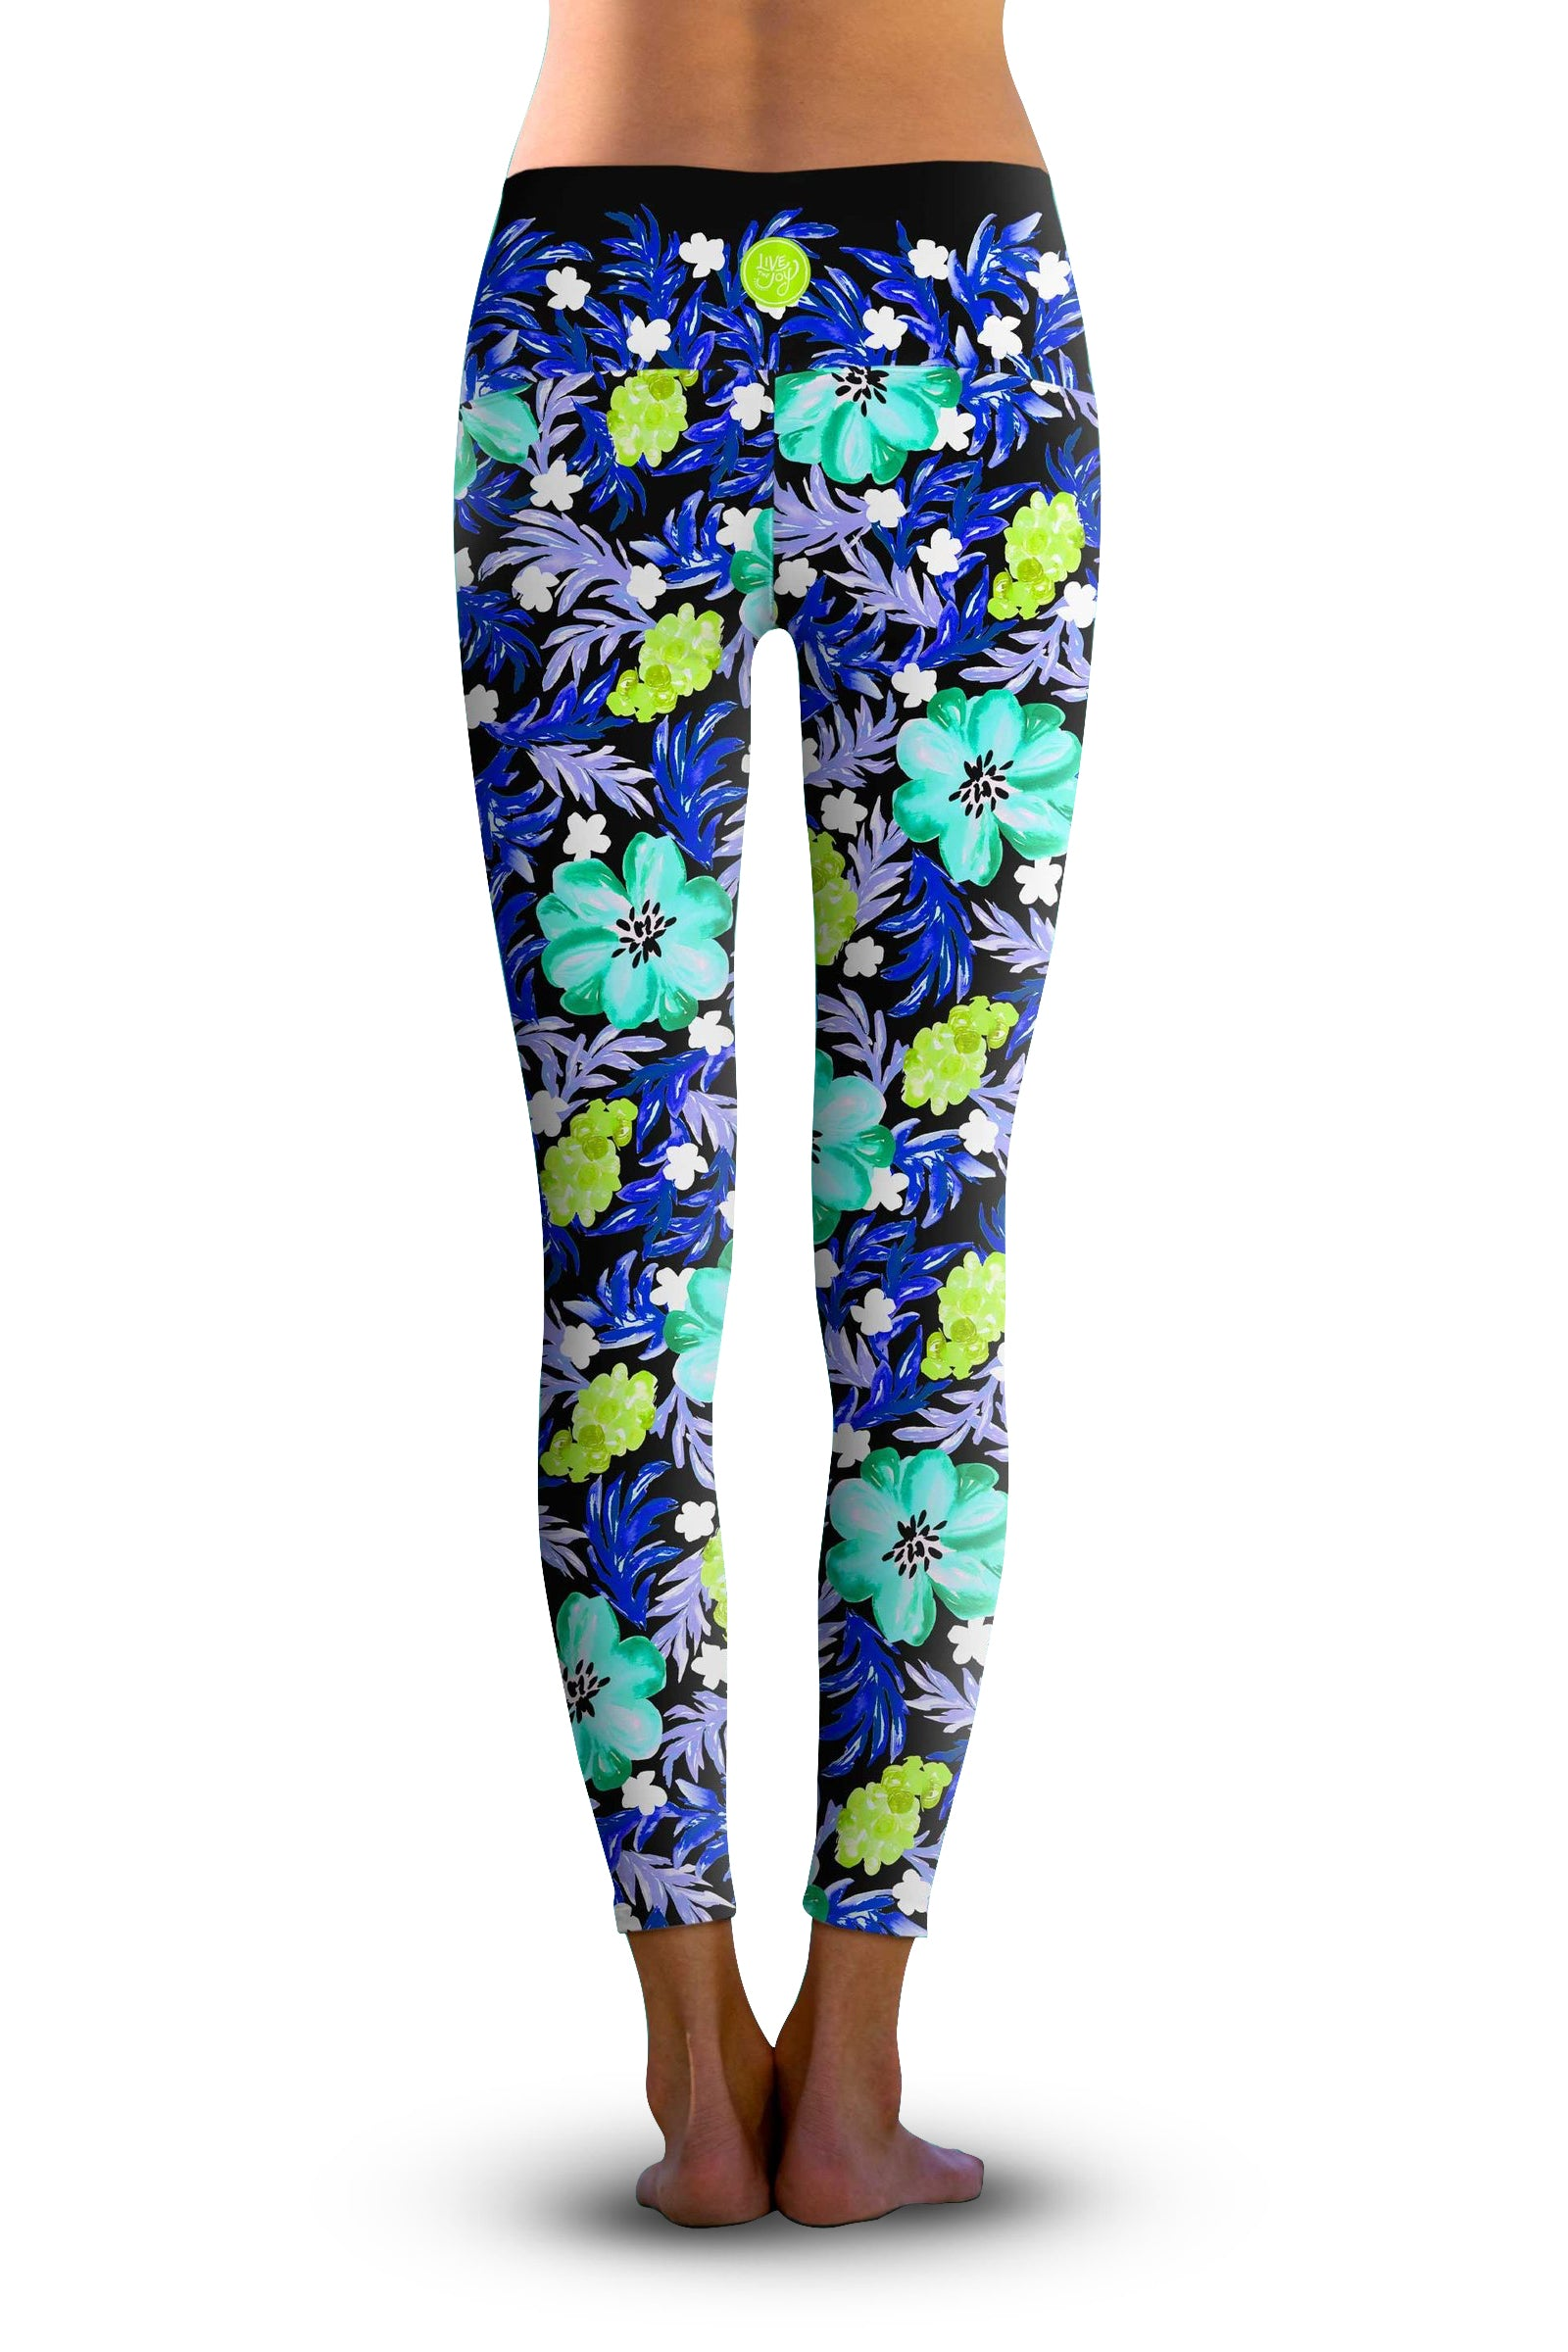 2nd Gen. Fabulous Blue Floral, Eco-Friendly Active Performance Leggings